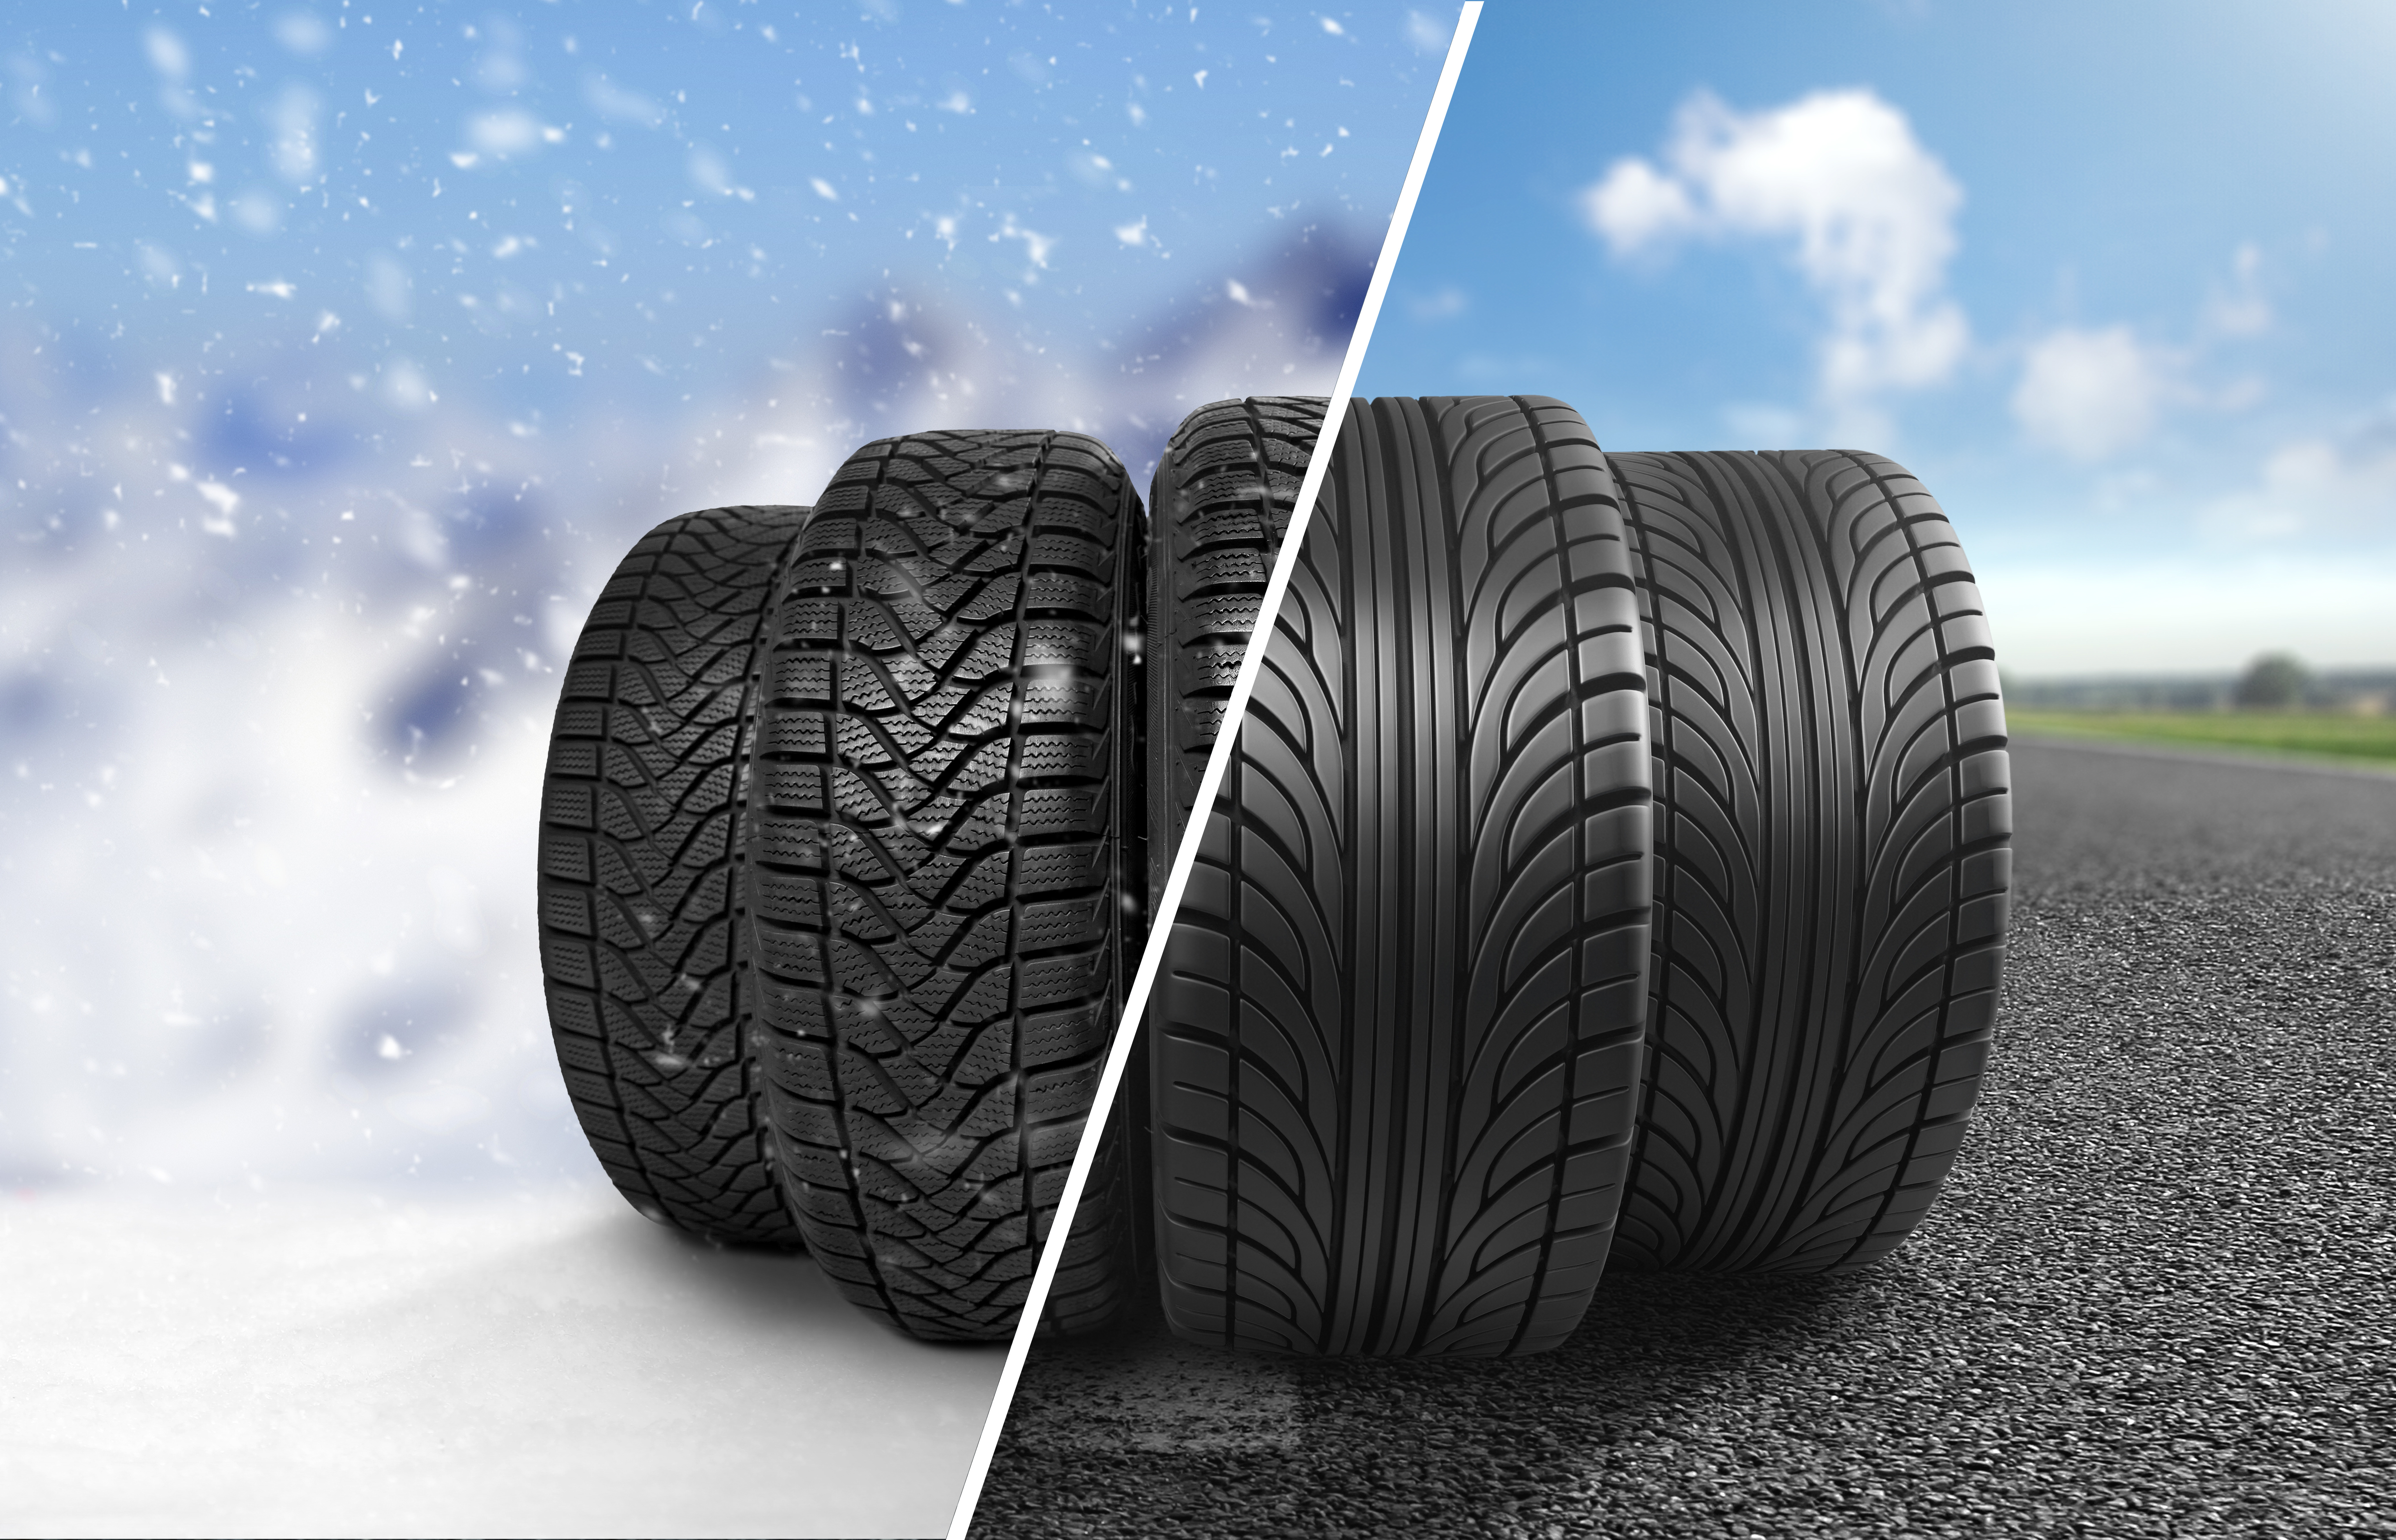 Snow Tires On Front Wheel Drive Car, How Are Winter Tires Different From All Season Tires, Snow Tires On Front Wheel Drive Car